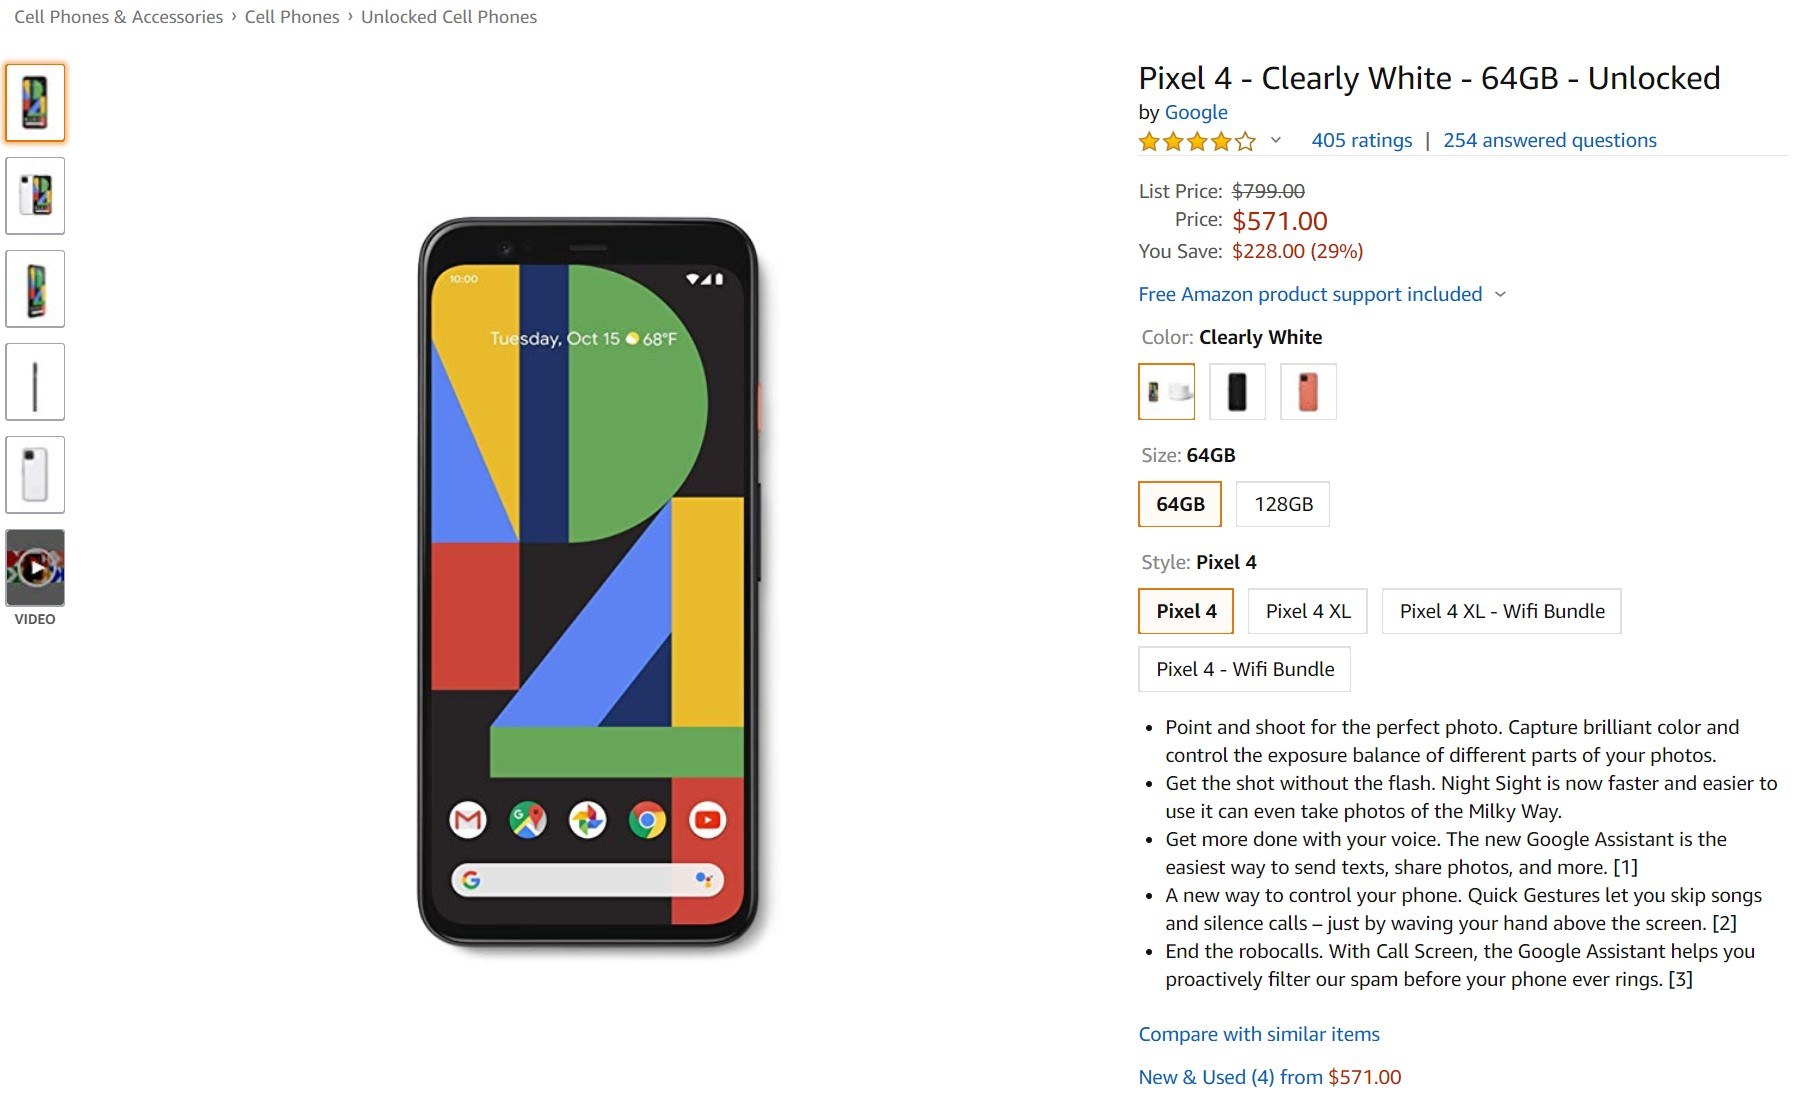 Deal Alert: Pixel 4 and Pixel 4XL are now available at an all-time low price 1